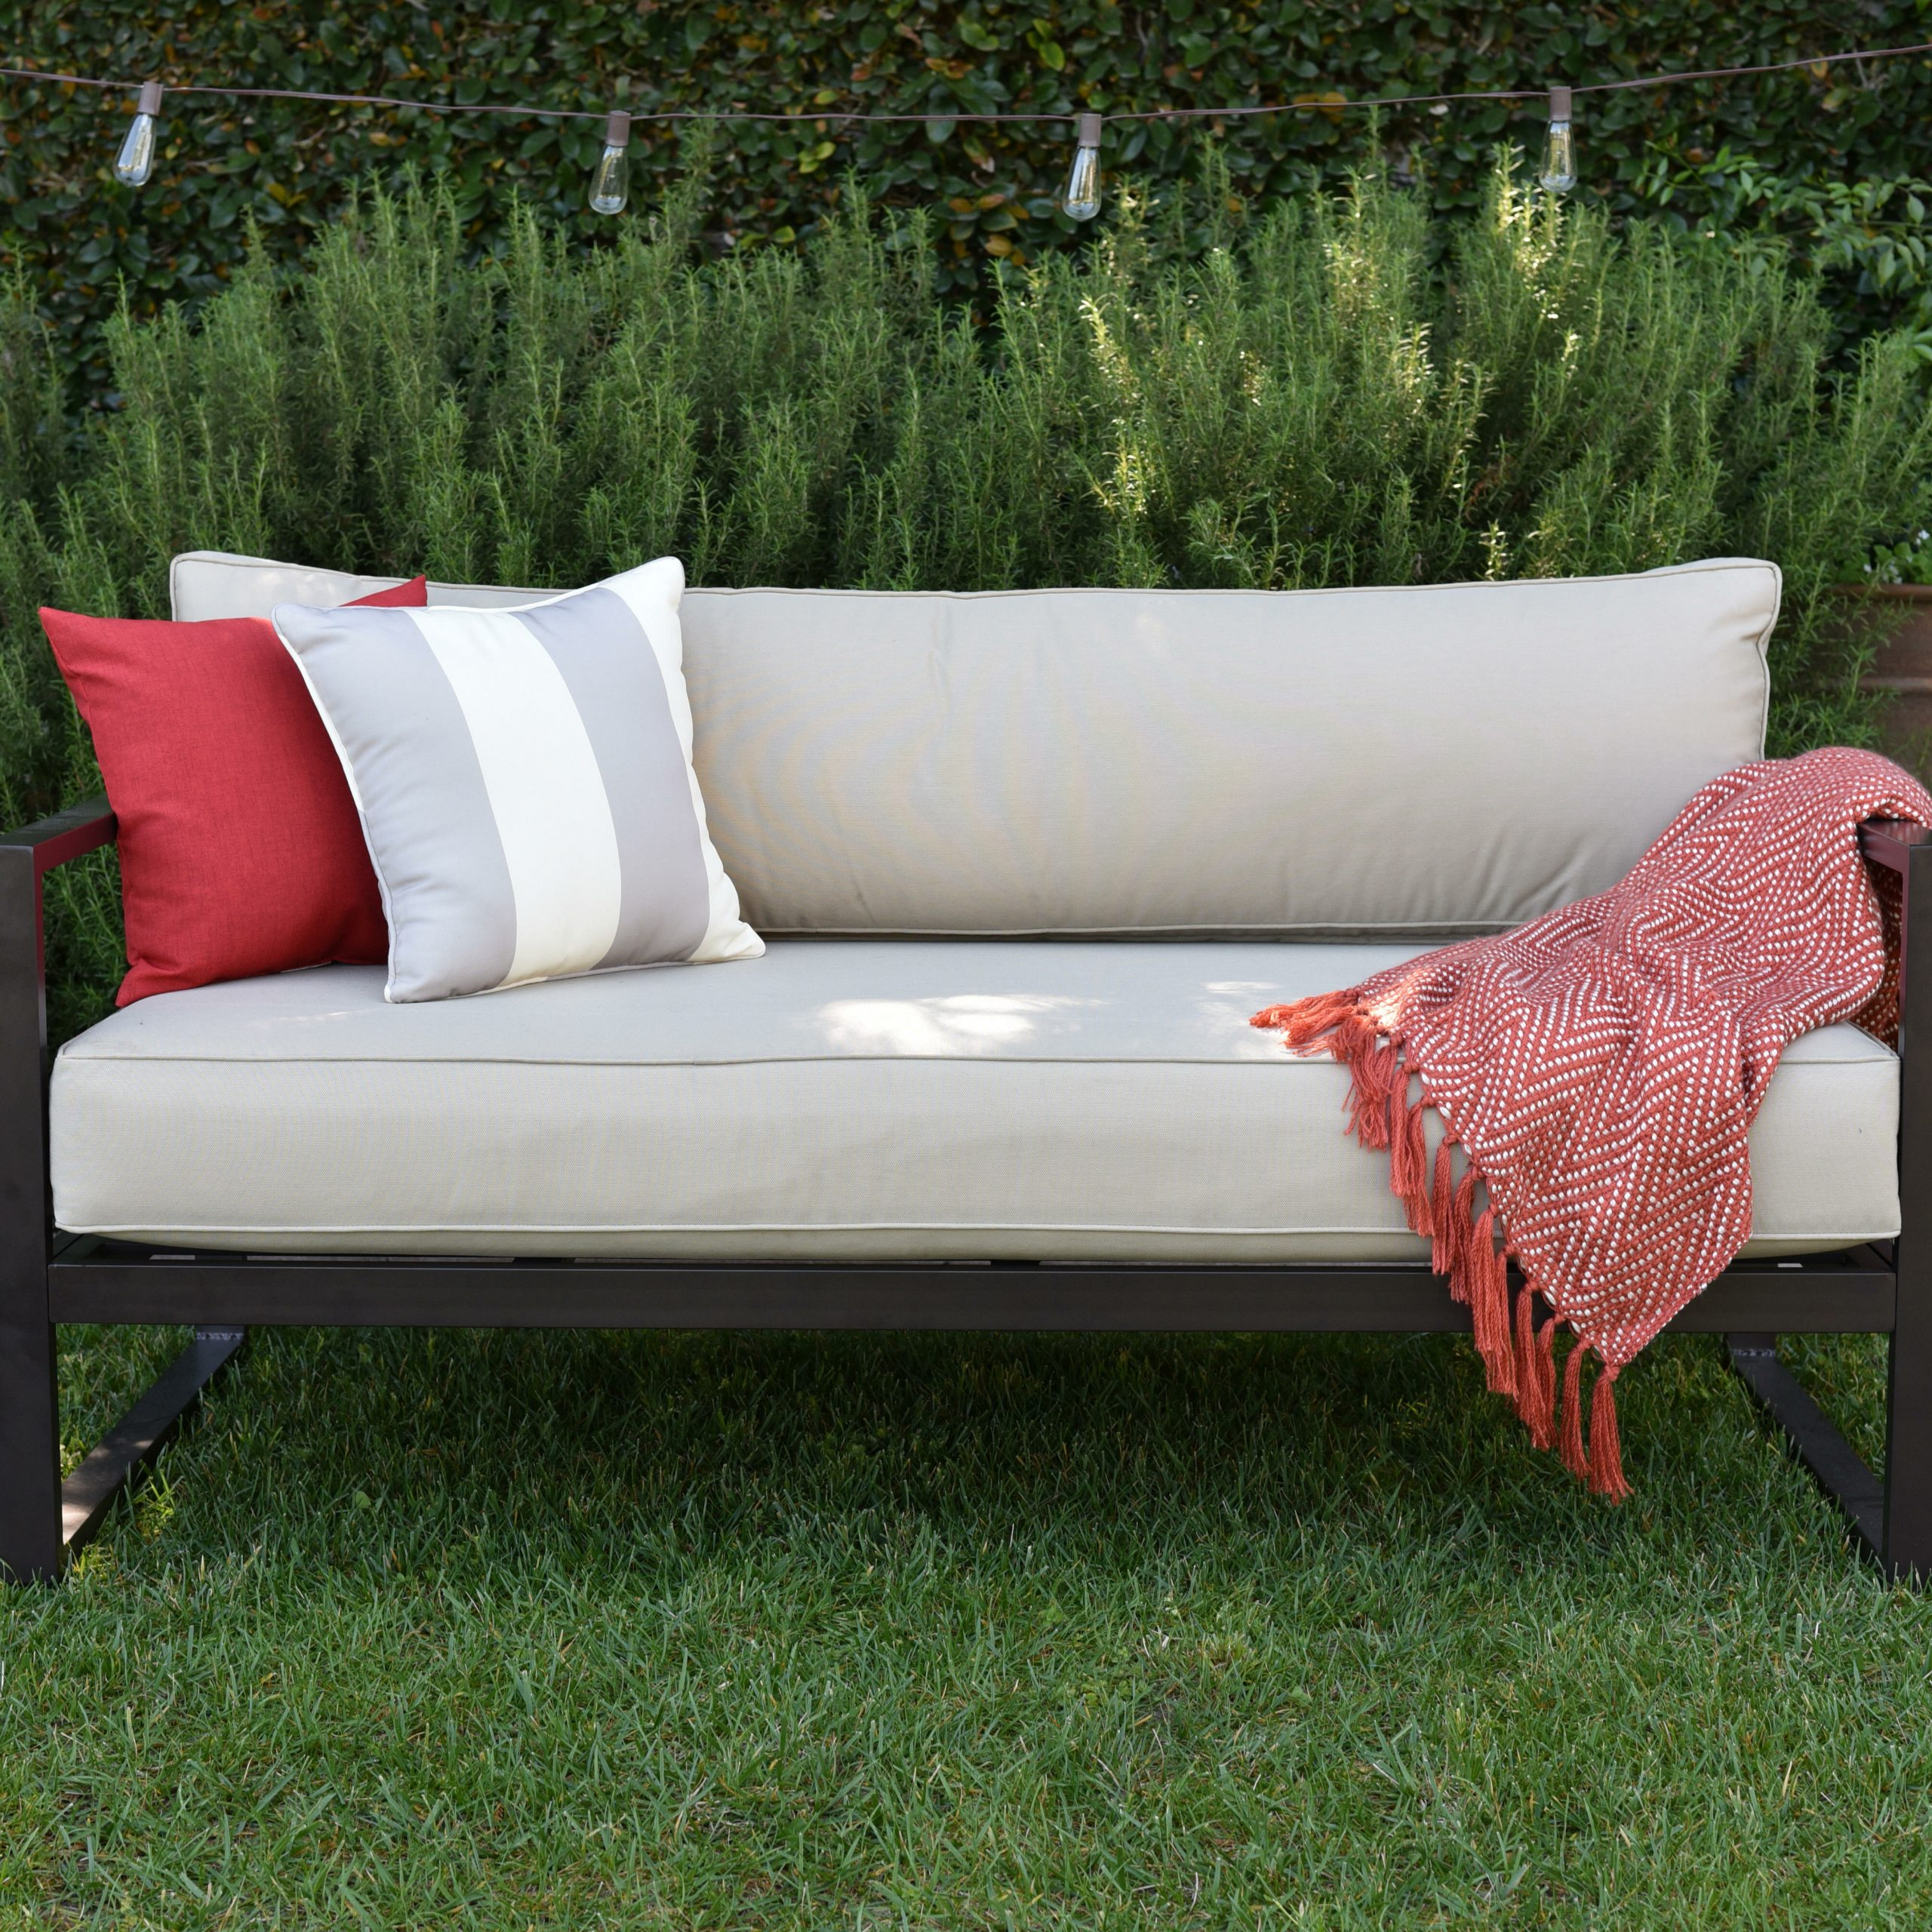 Widely Used Catalina Outdoor Sofas With Cushions Inside Catalina Outdoor Sofa With Cushions (Gallery 1 of 11)